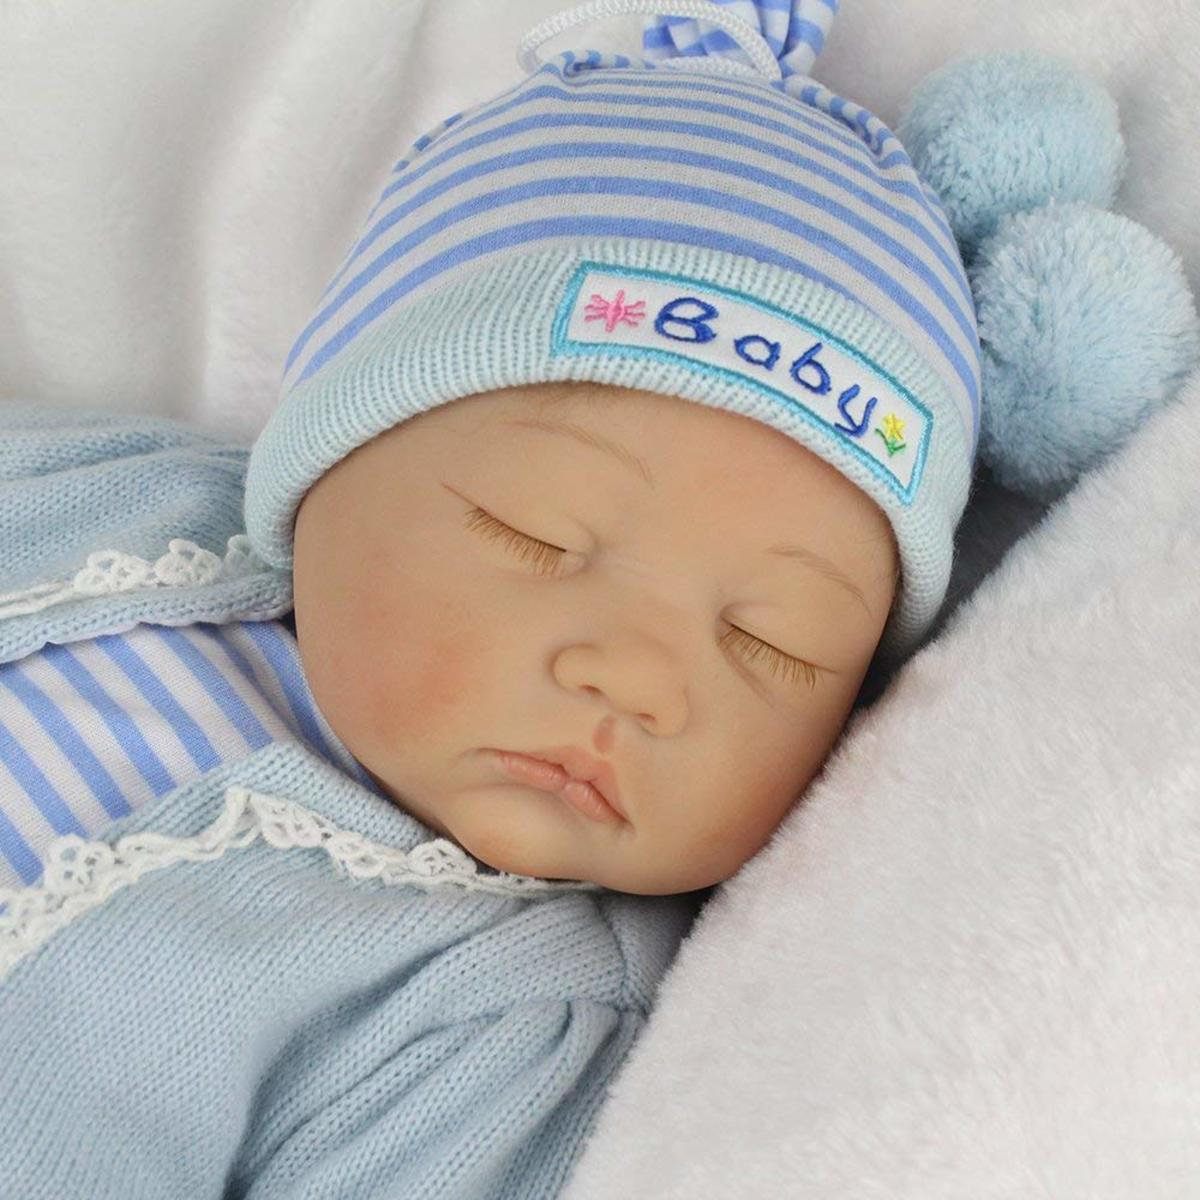 A Newborn Baby Doll looks so real